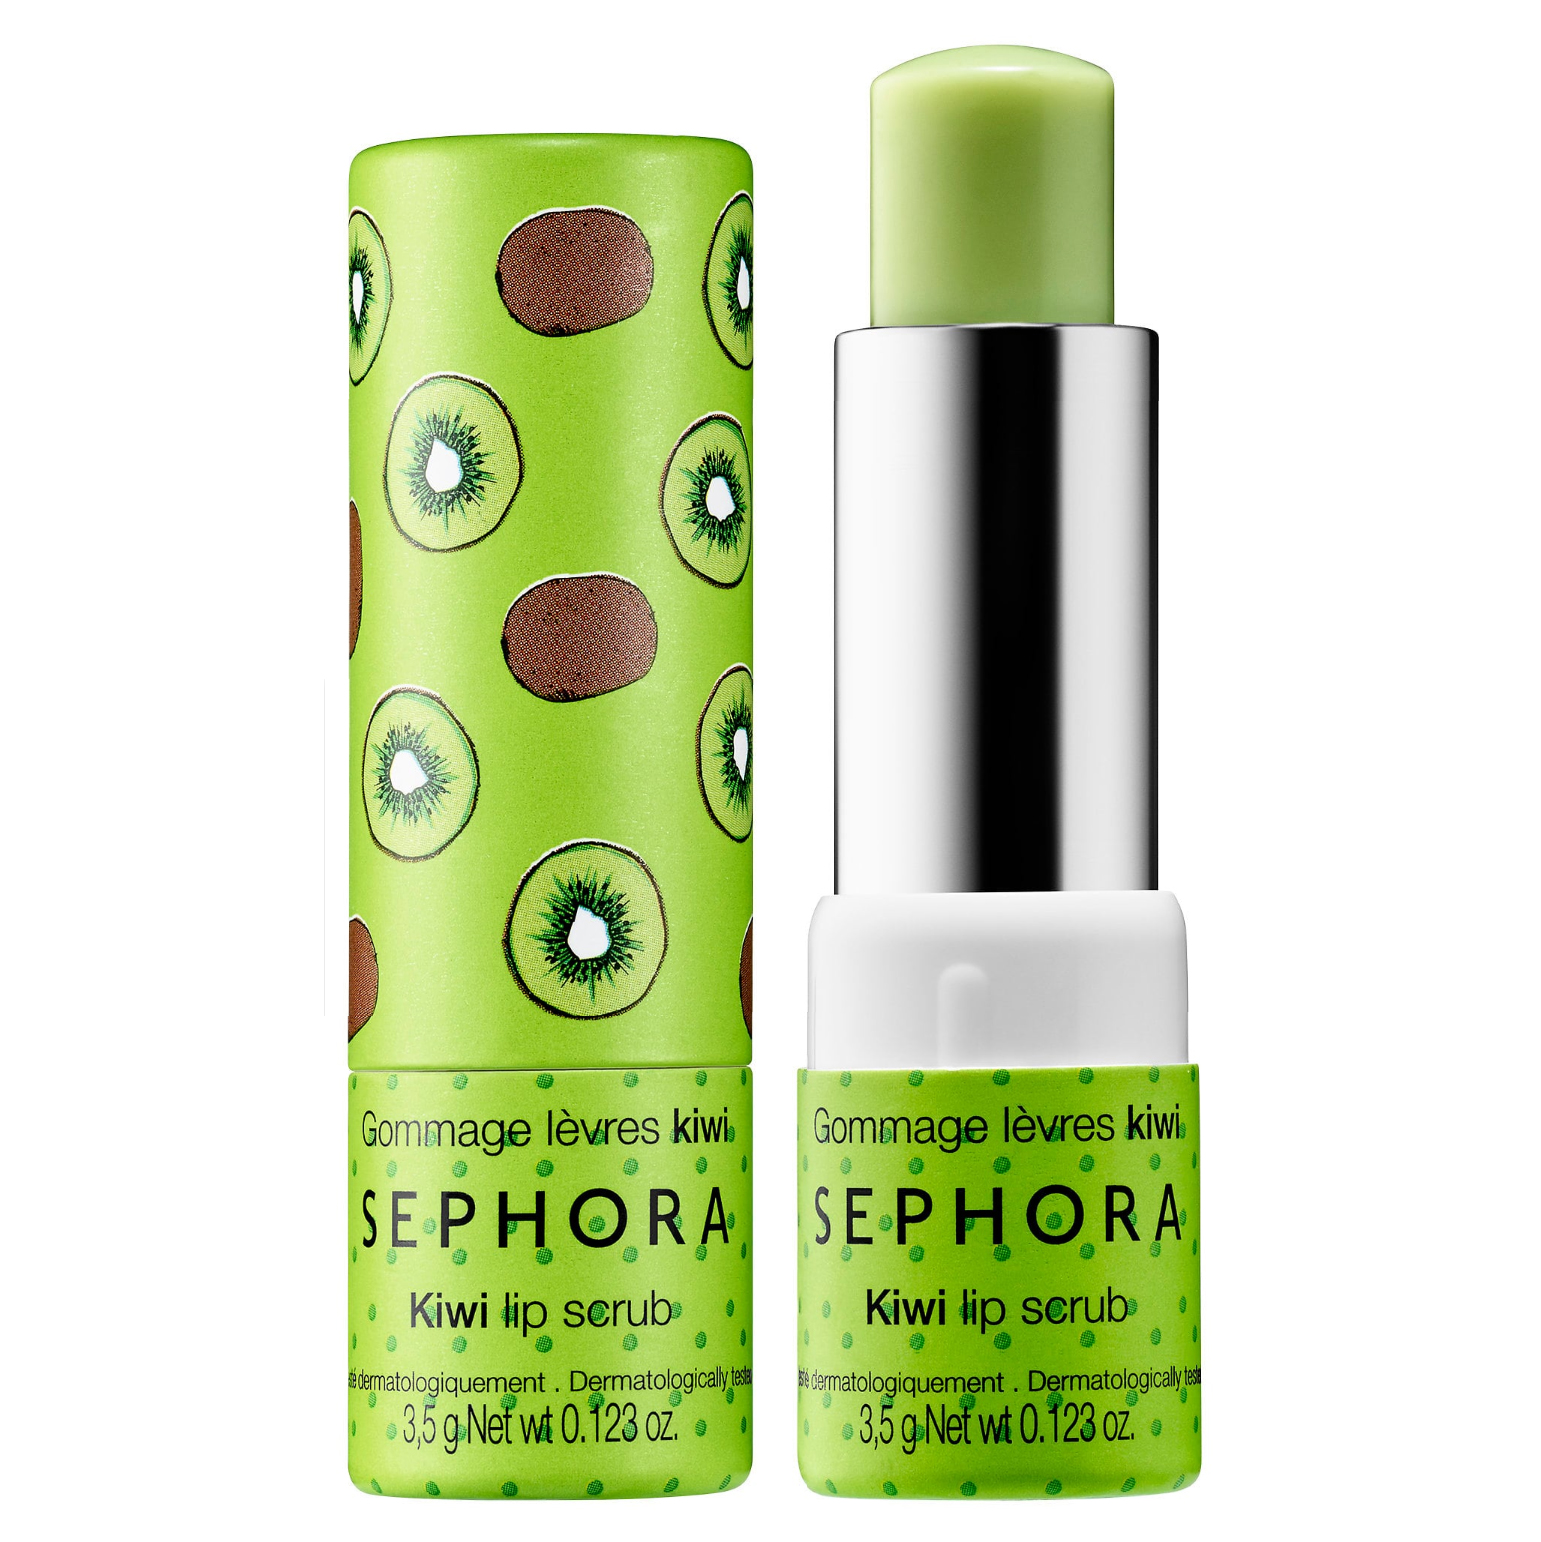 kiwi-flavored lip scrub by sephora